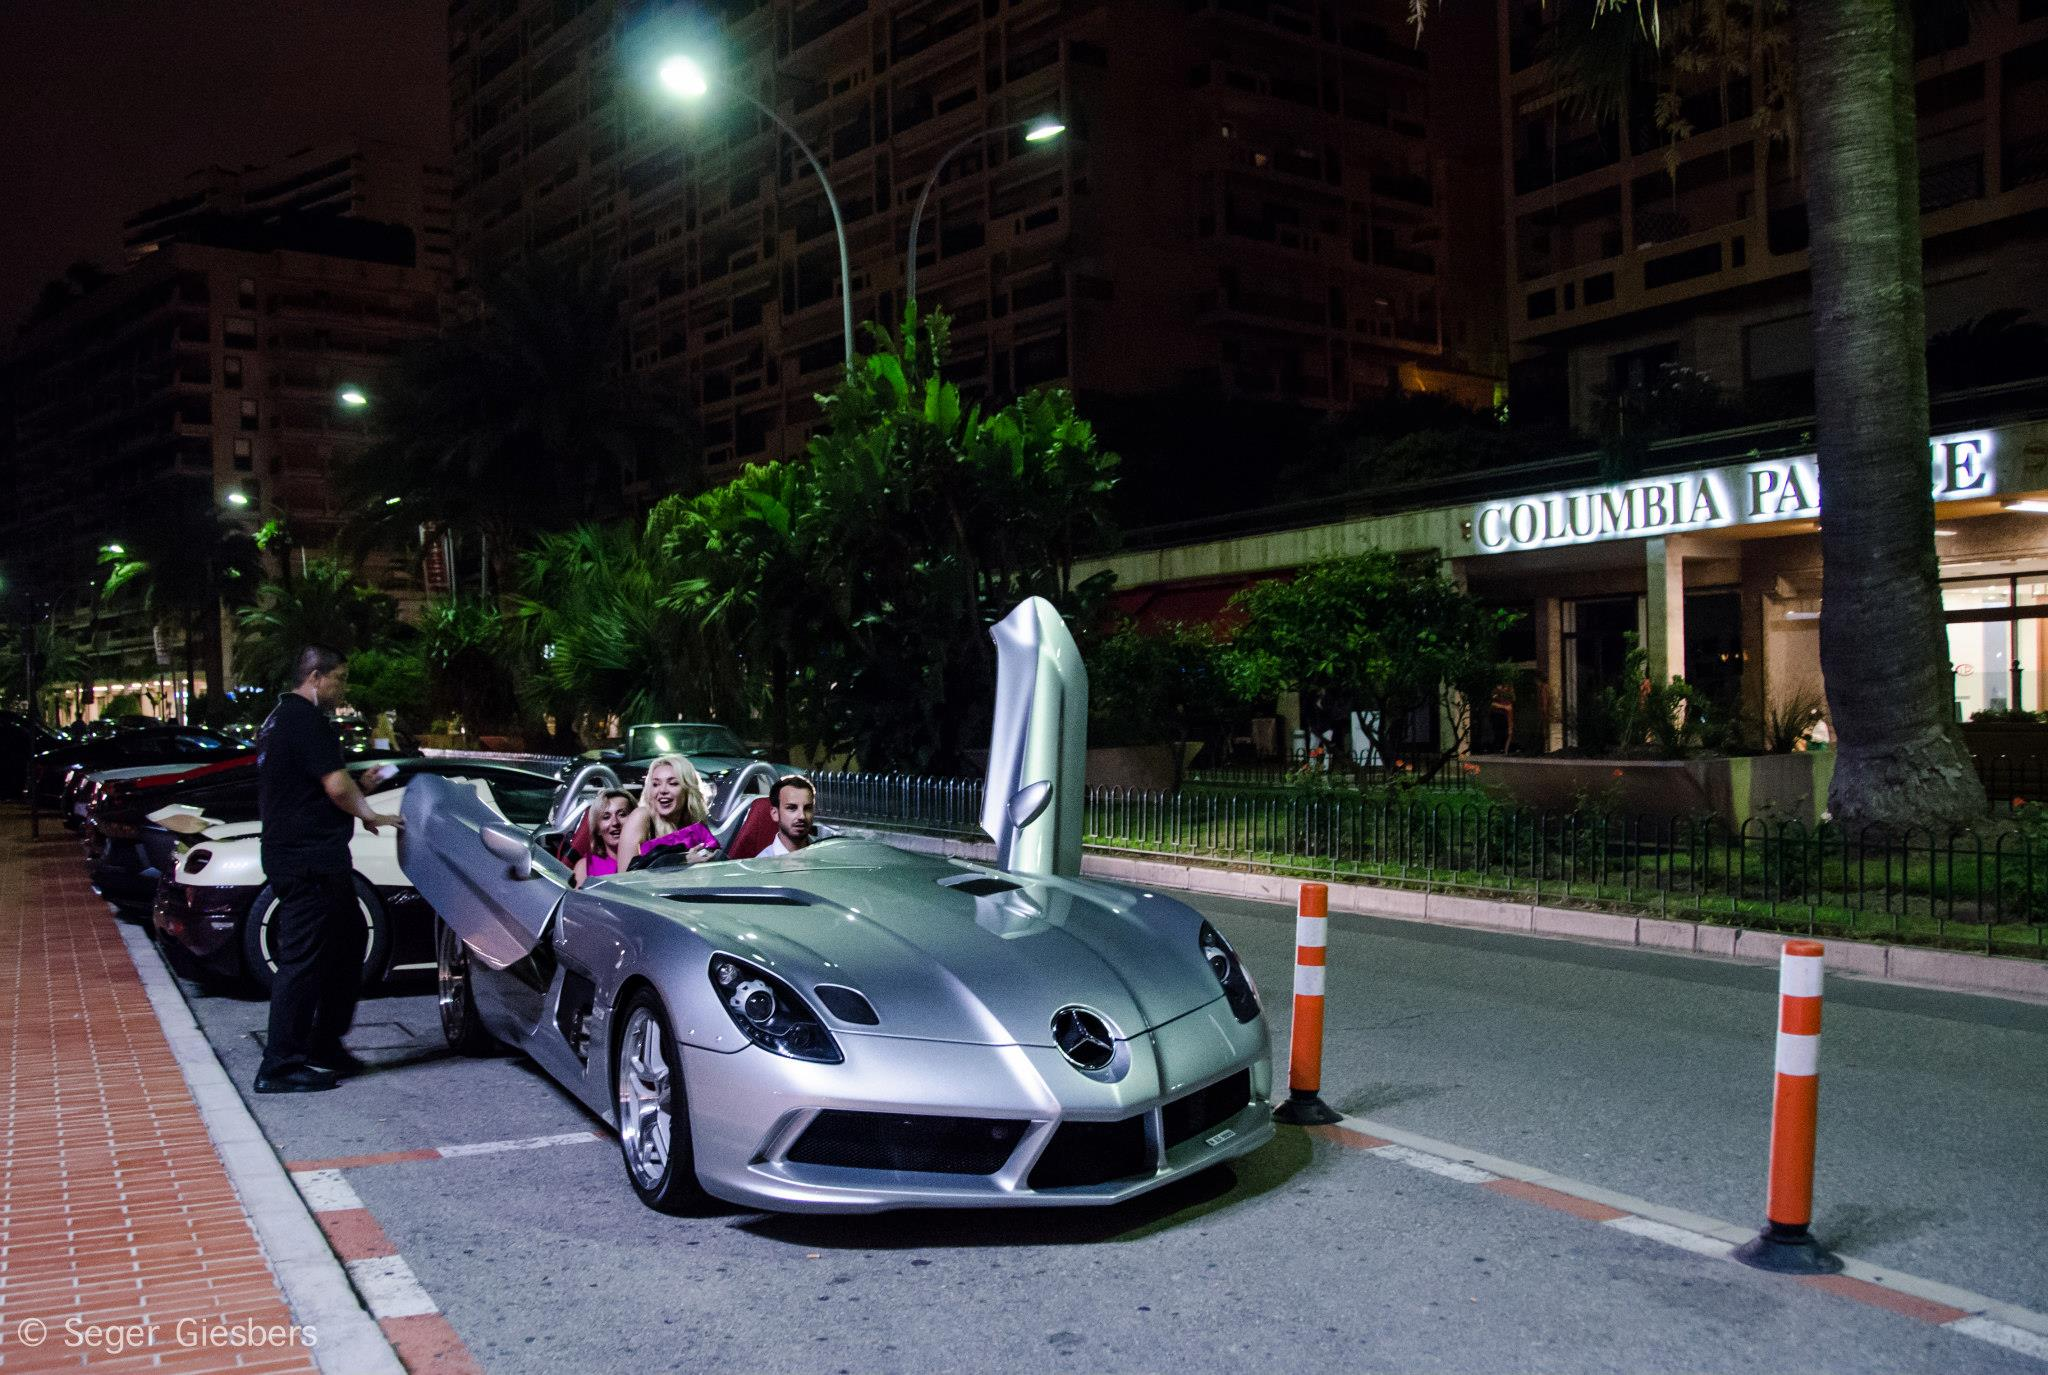 Two girls and a guy in a Mercedes-Benz SLR Stirling Moss - www.hartvoorautos.nl